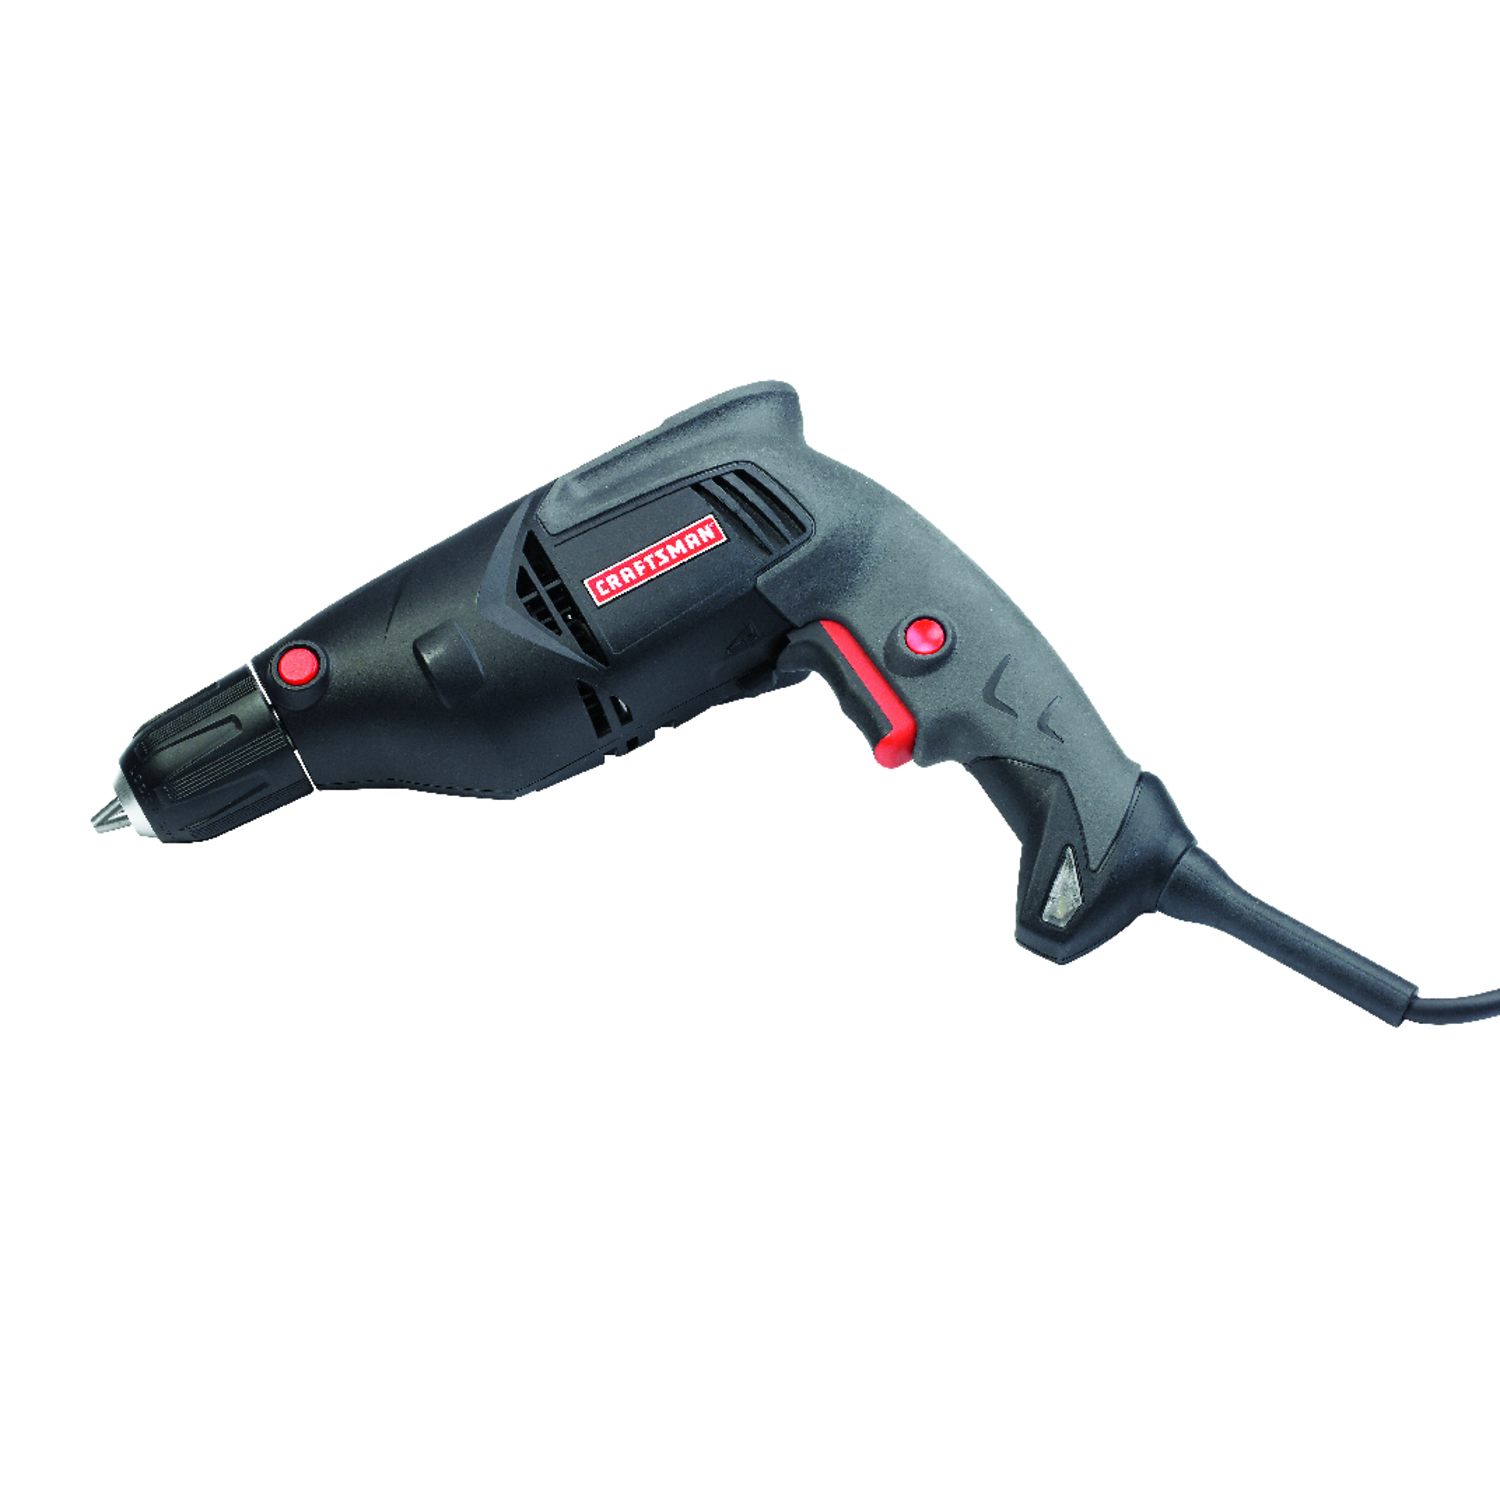 Craftsman  3/8 in. Keyless  Corded Drill  5.5 amps 1500 rpm